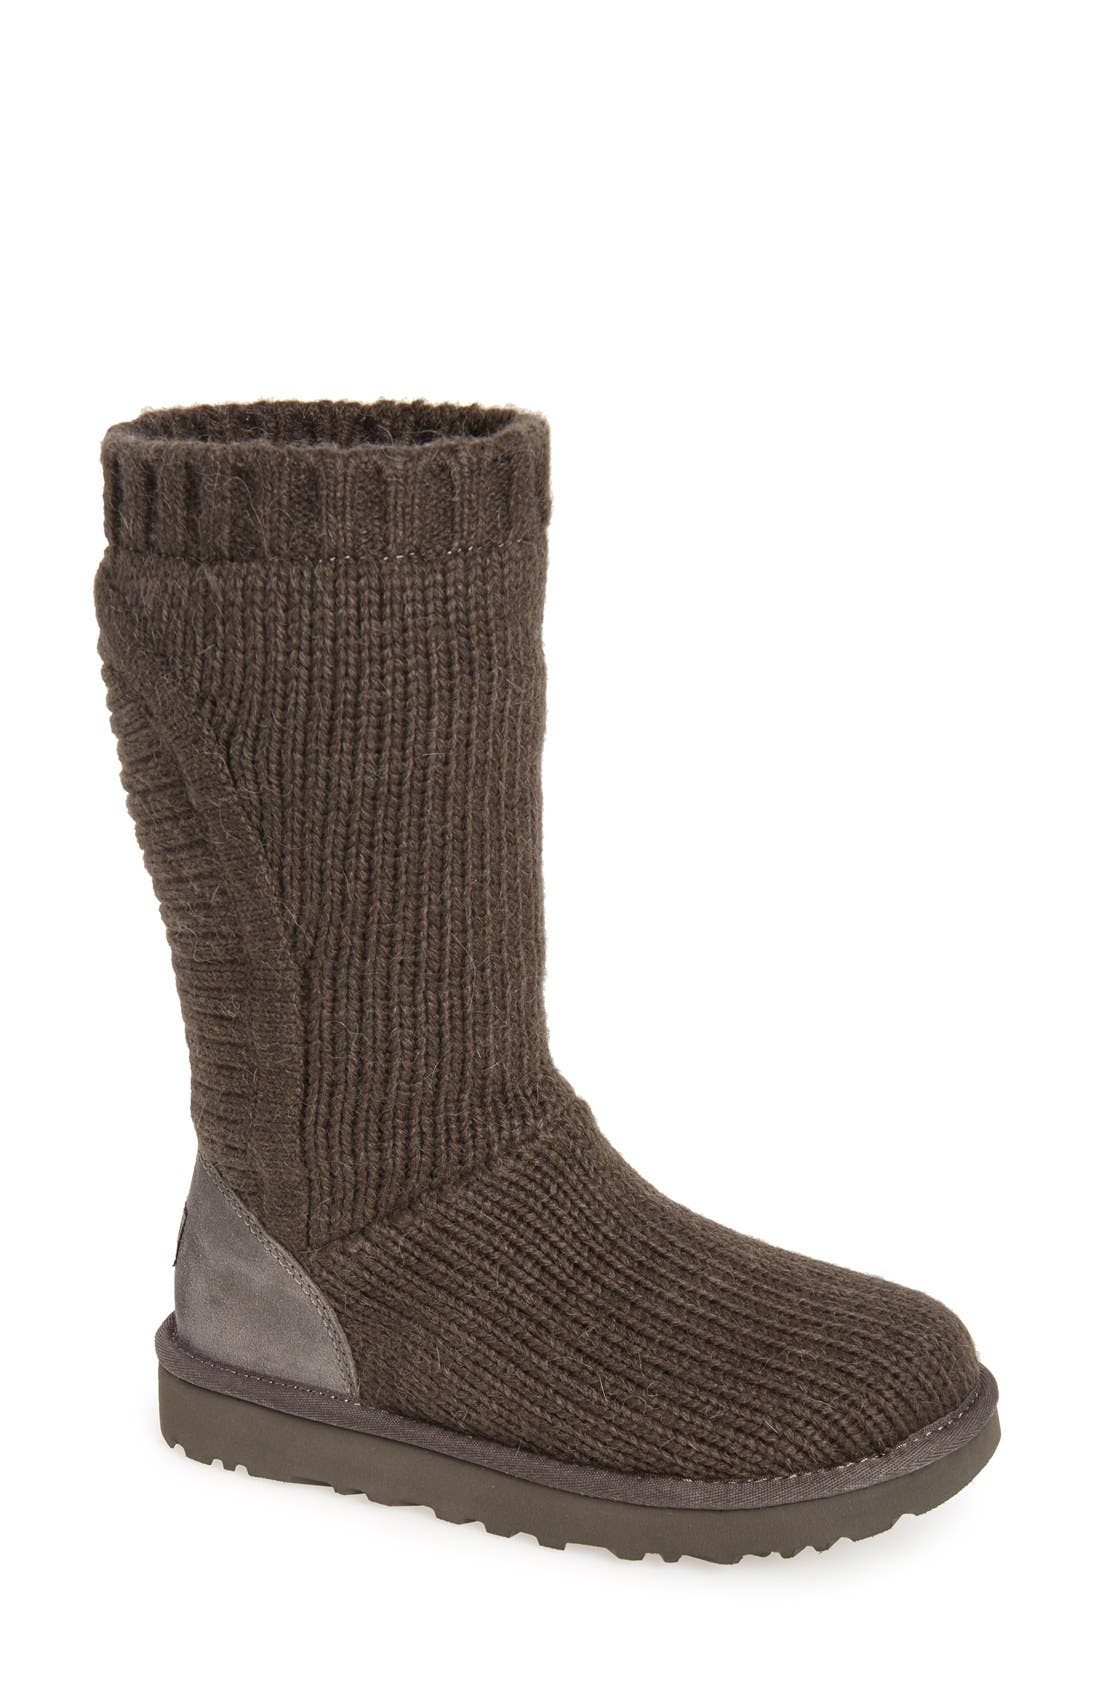 'Capra' Ribbed Knit Genuine Shearling Lined Boot,                             Main thumbnail 1, color,                             Grey Fabric